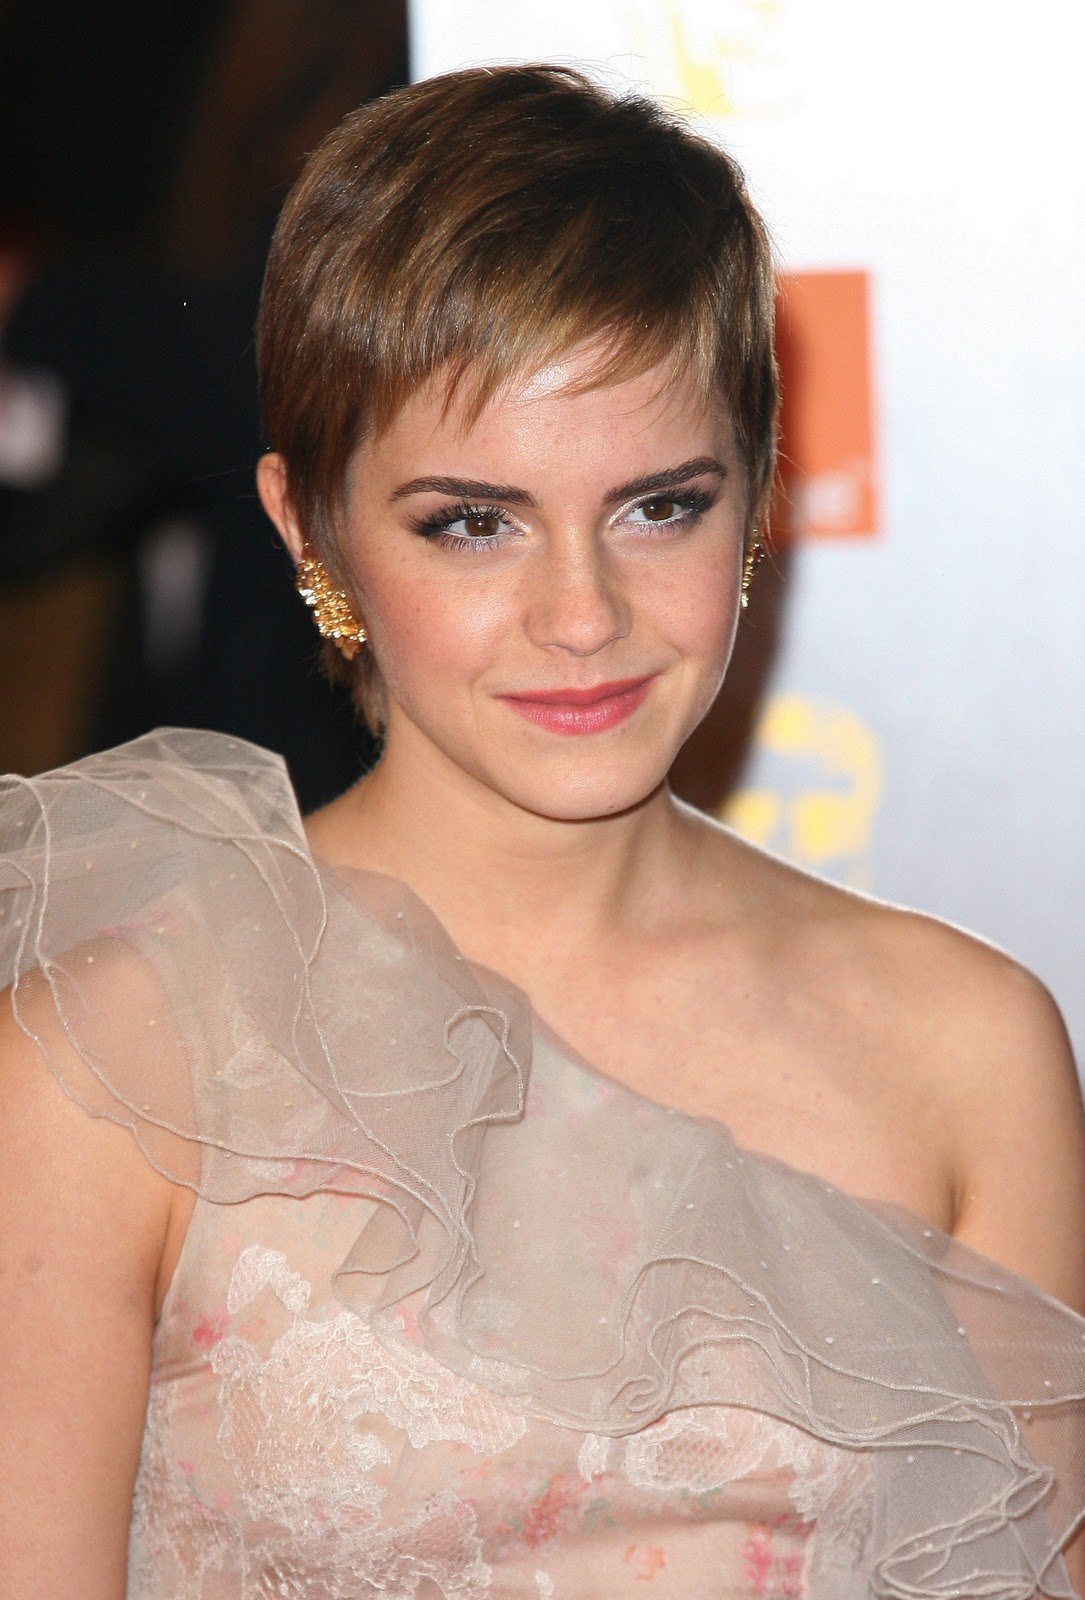 Cute Emma Watson Pixie Haircut 2013 Fashion Trends